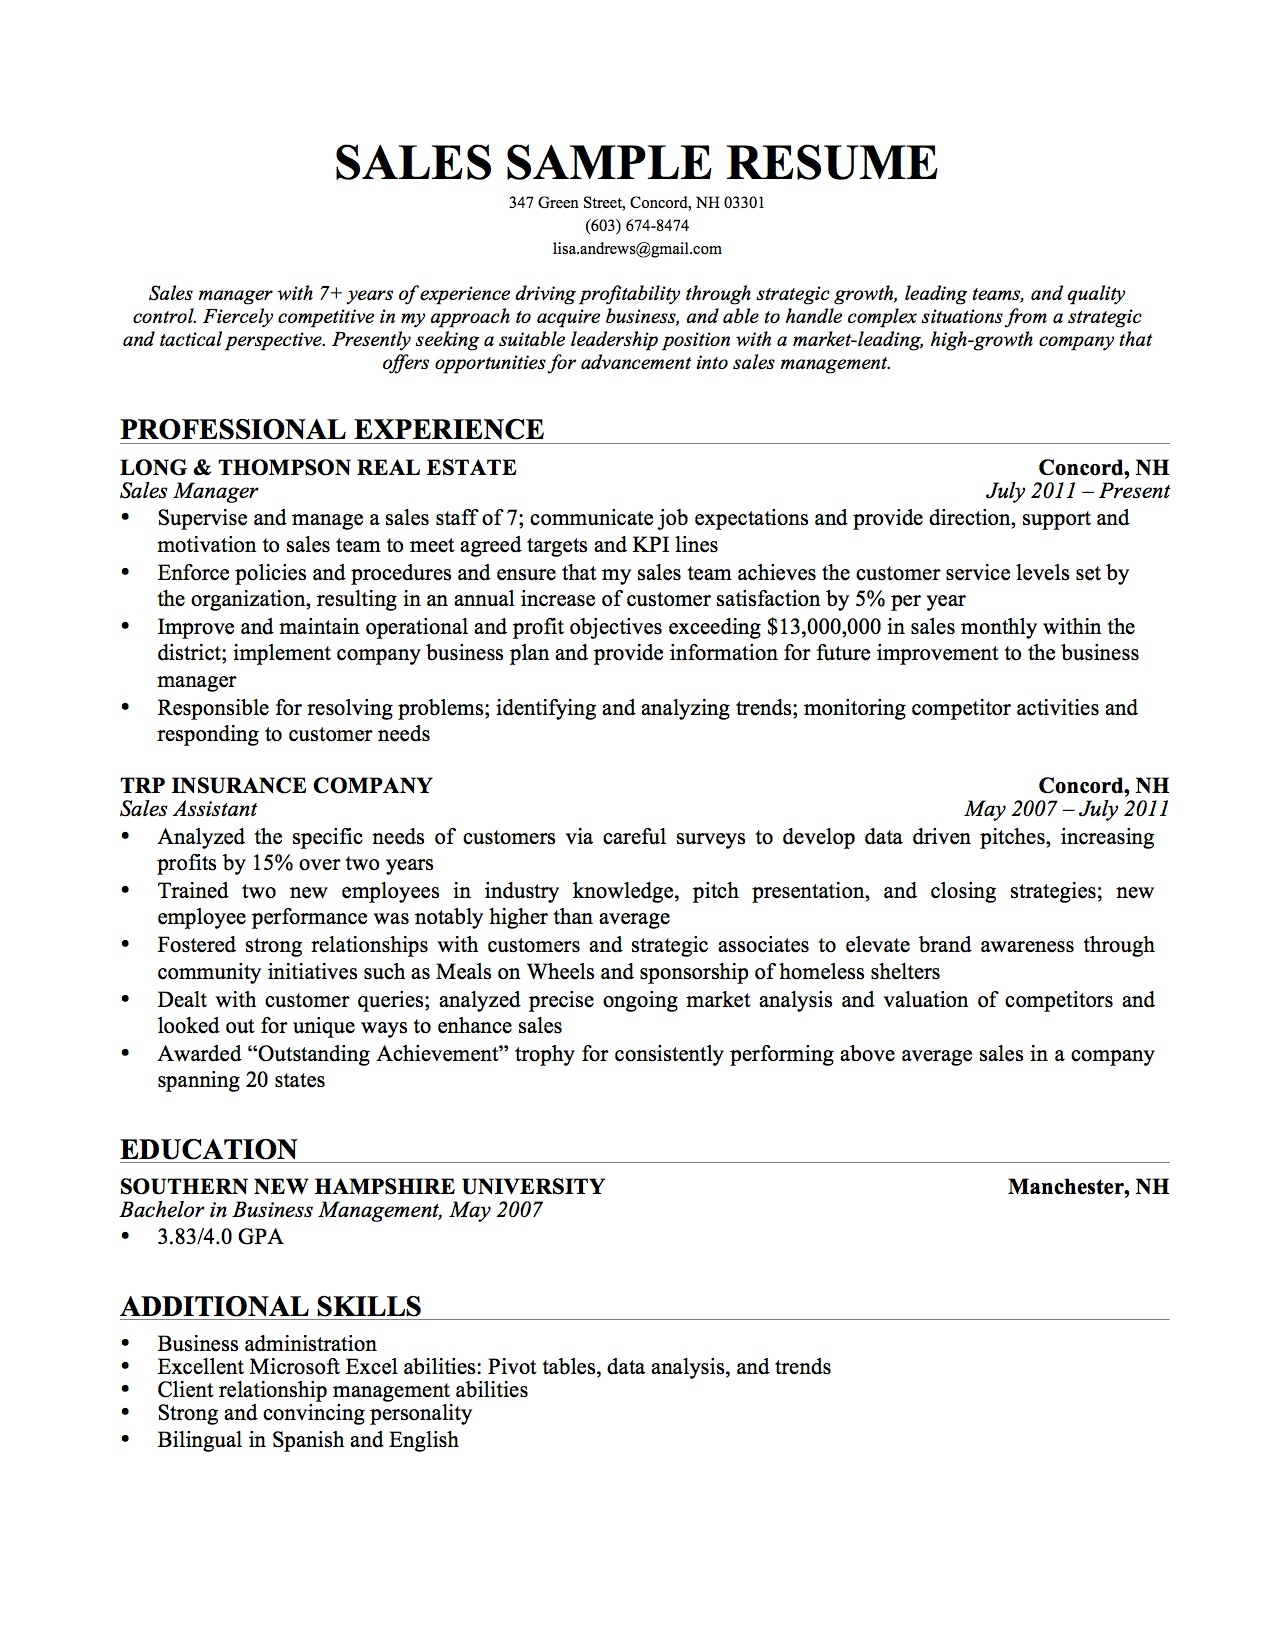 restaurant manager resume samples restaurant manager resume free hotel general manager resume examples hotel assistant general